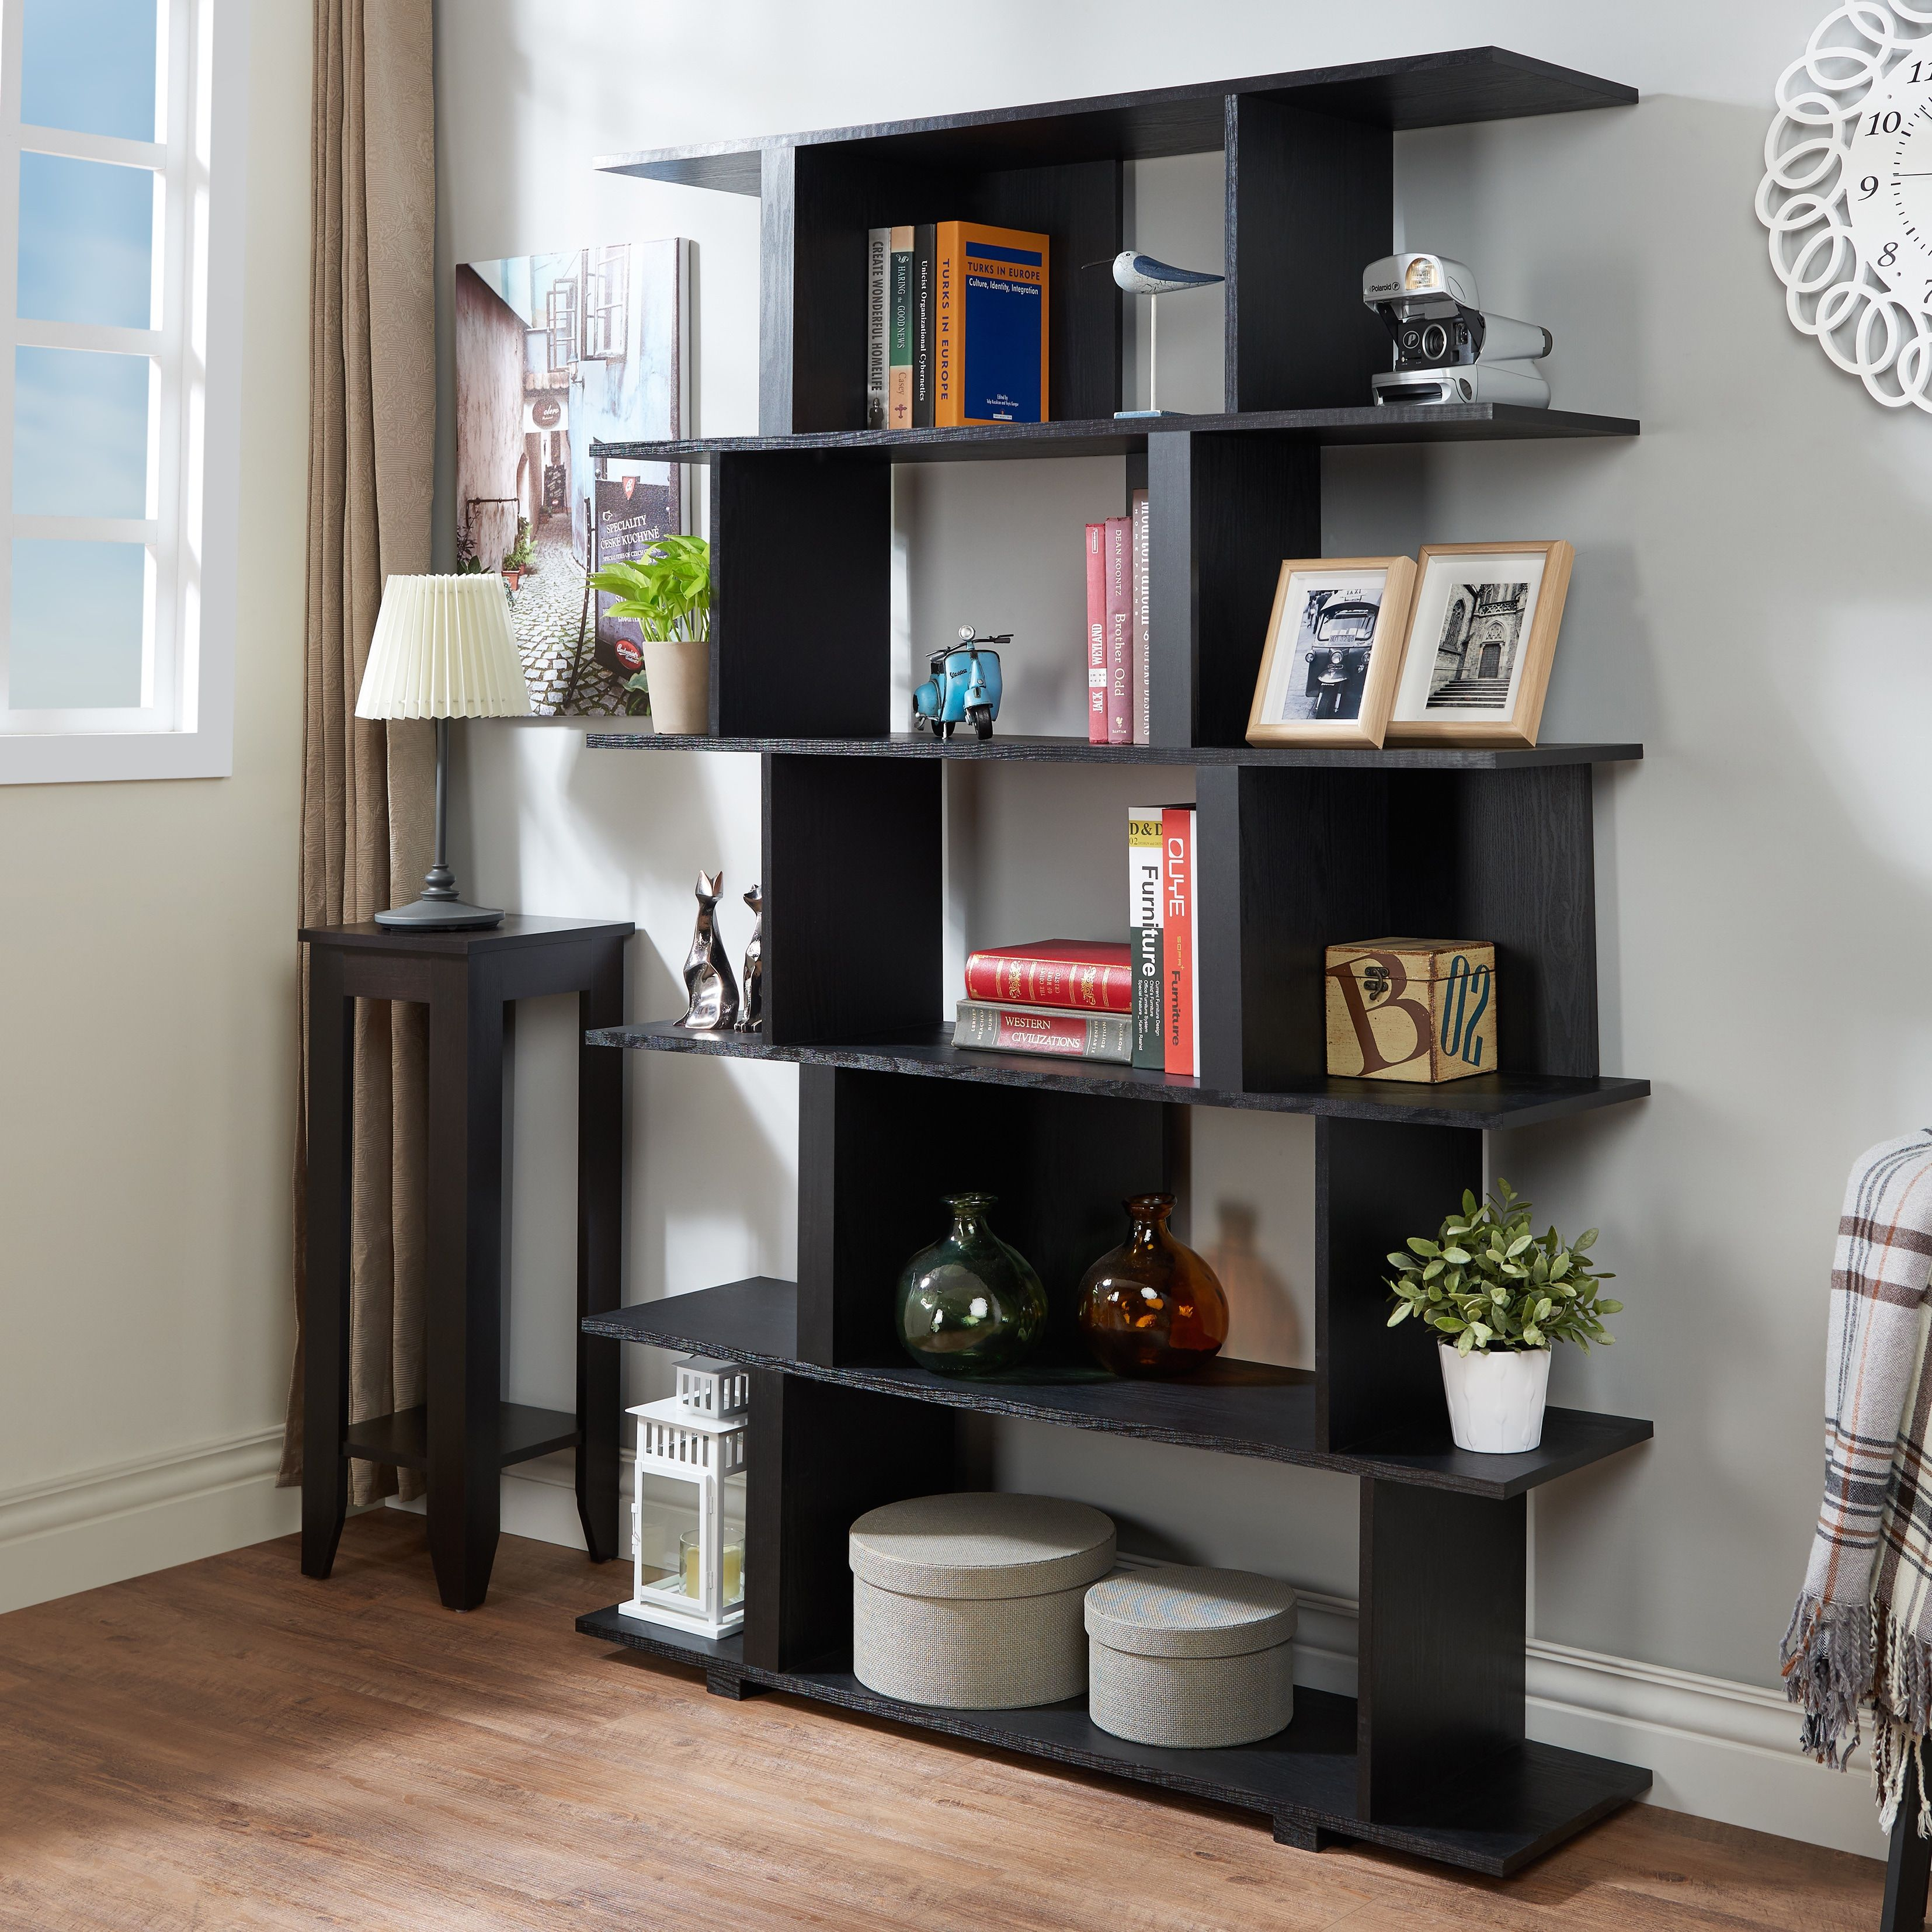 bookcases product unit chairish open bookcase federal vintage bookshelf shelving shelf display mahogany cabinet